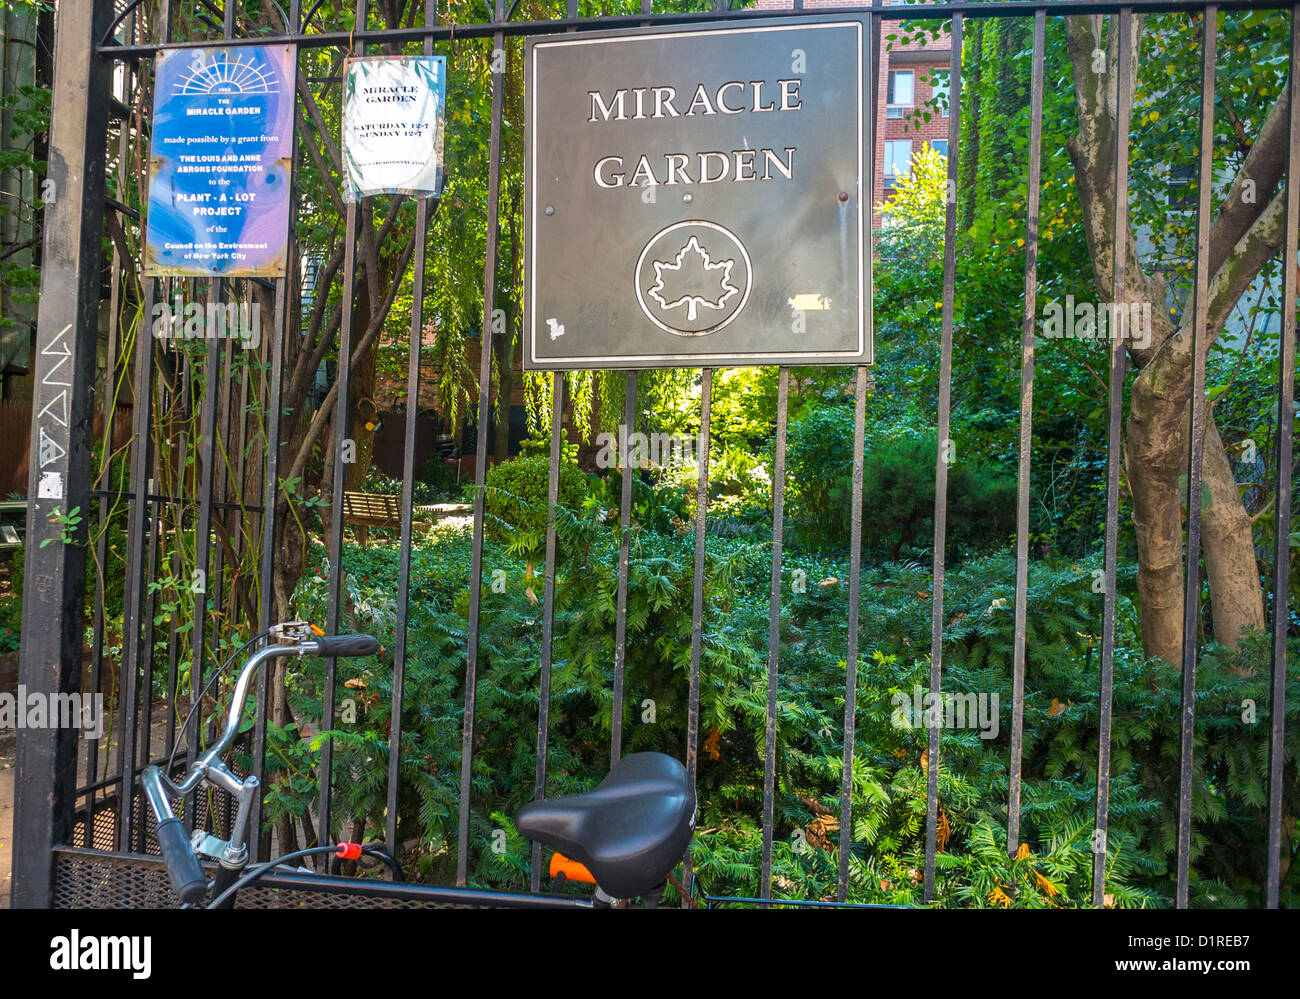 New York, NY, USA, Detail, Sign on Fence, East Village 'Miracle Garden' Community Gardens, Scenes, Local - Stock Image